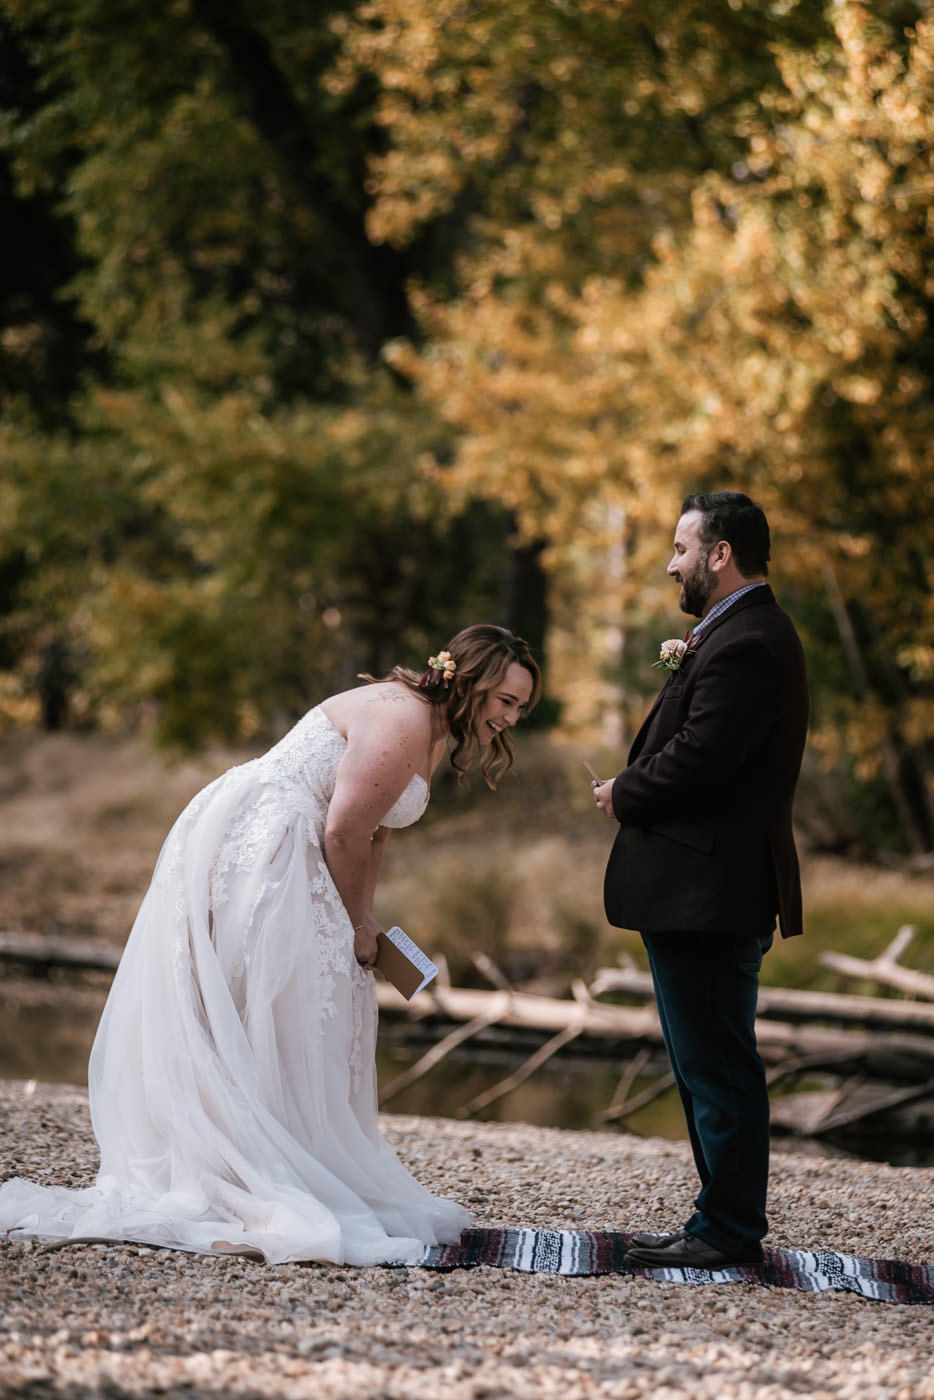 cathedral-beach-elopement-ceremony-yosemite-10.jpg